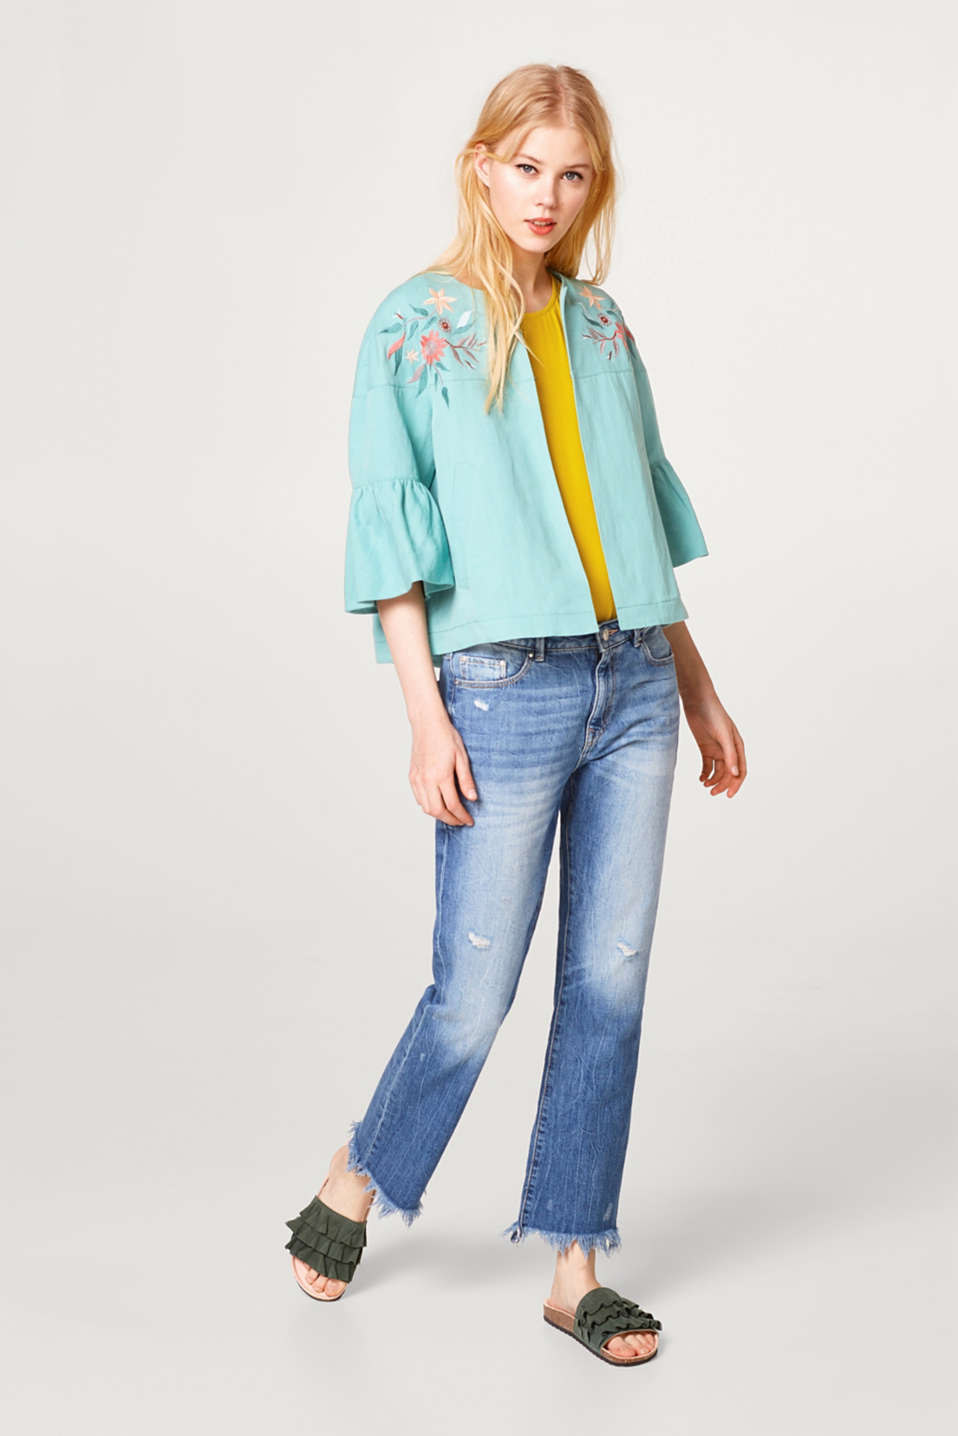 Embroidered jacket with linen in a fashionable A-line